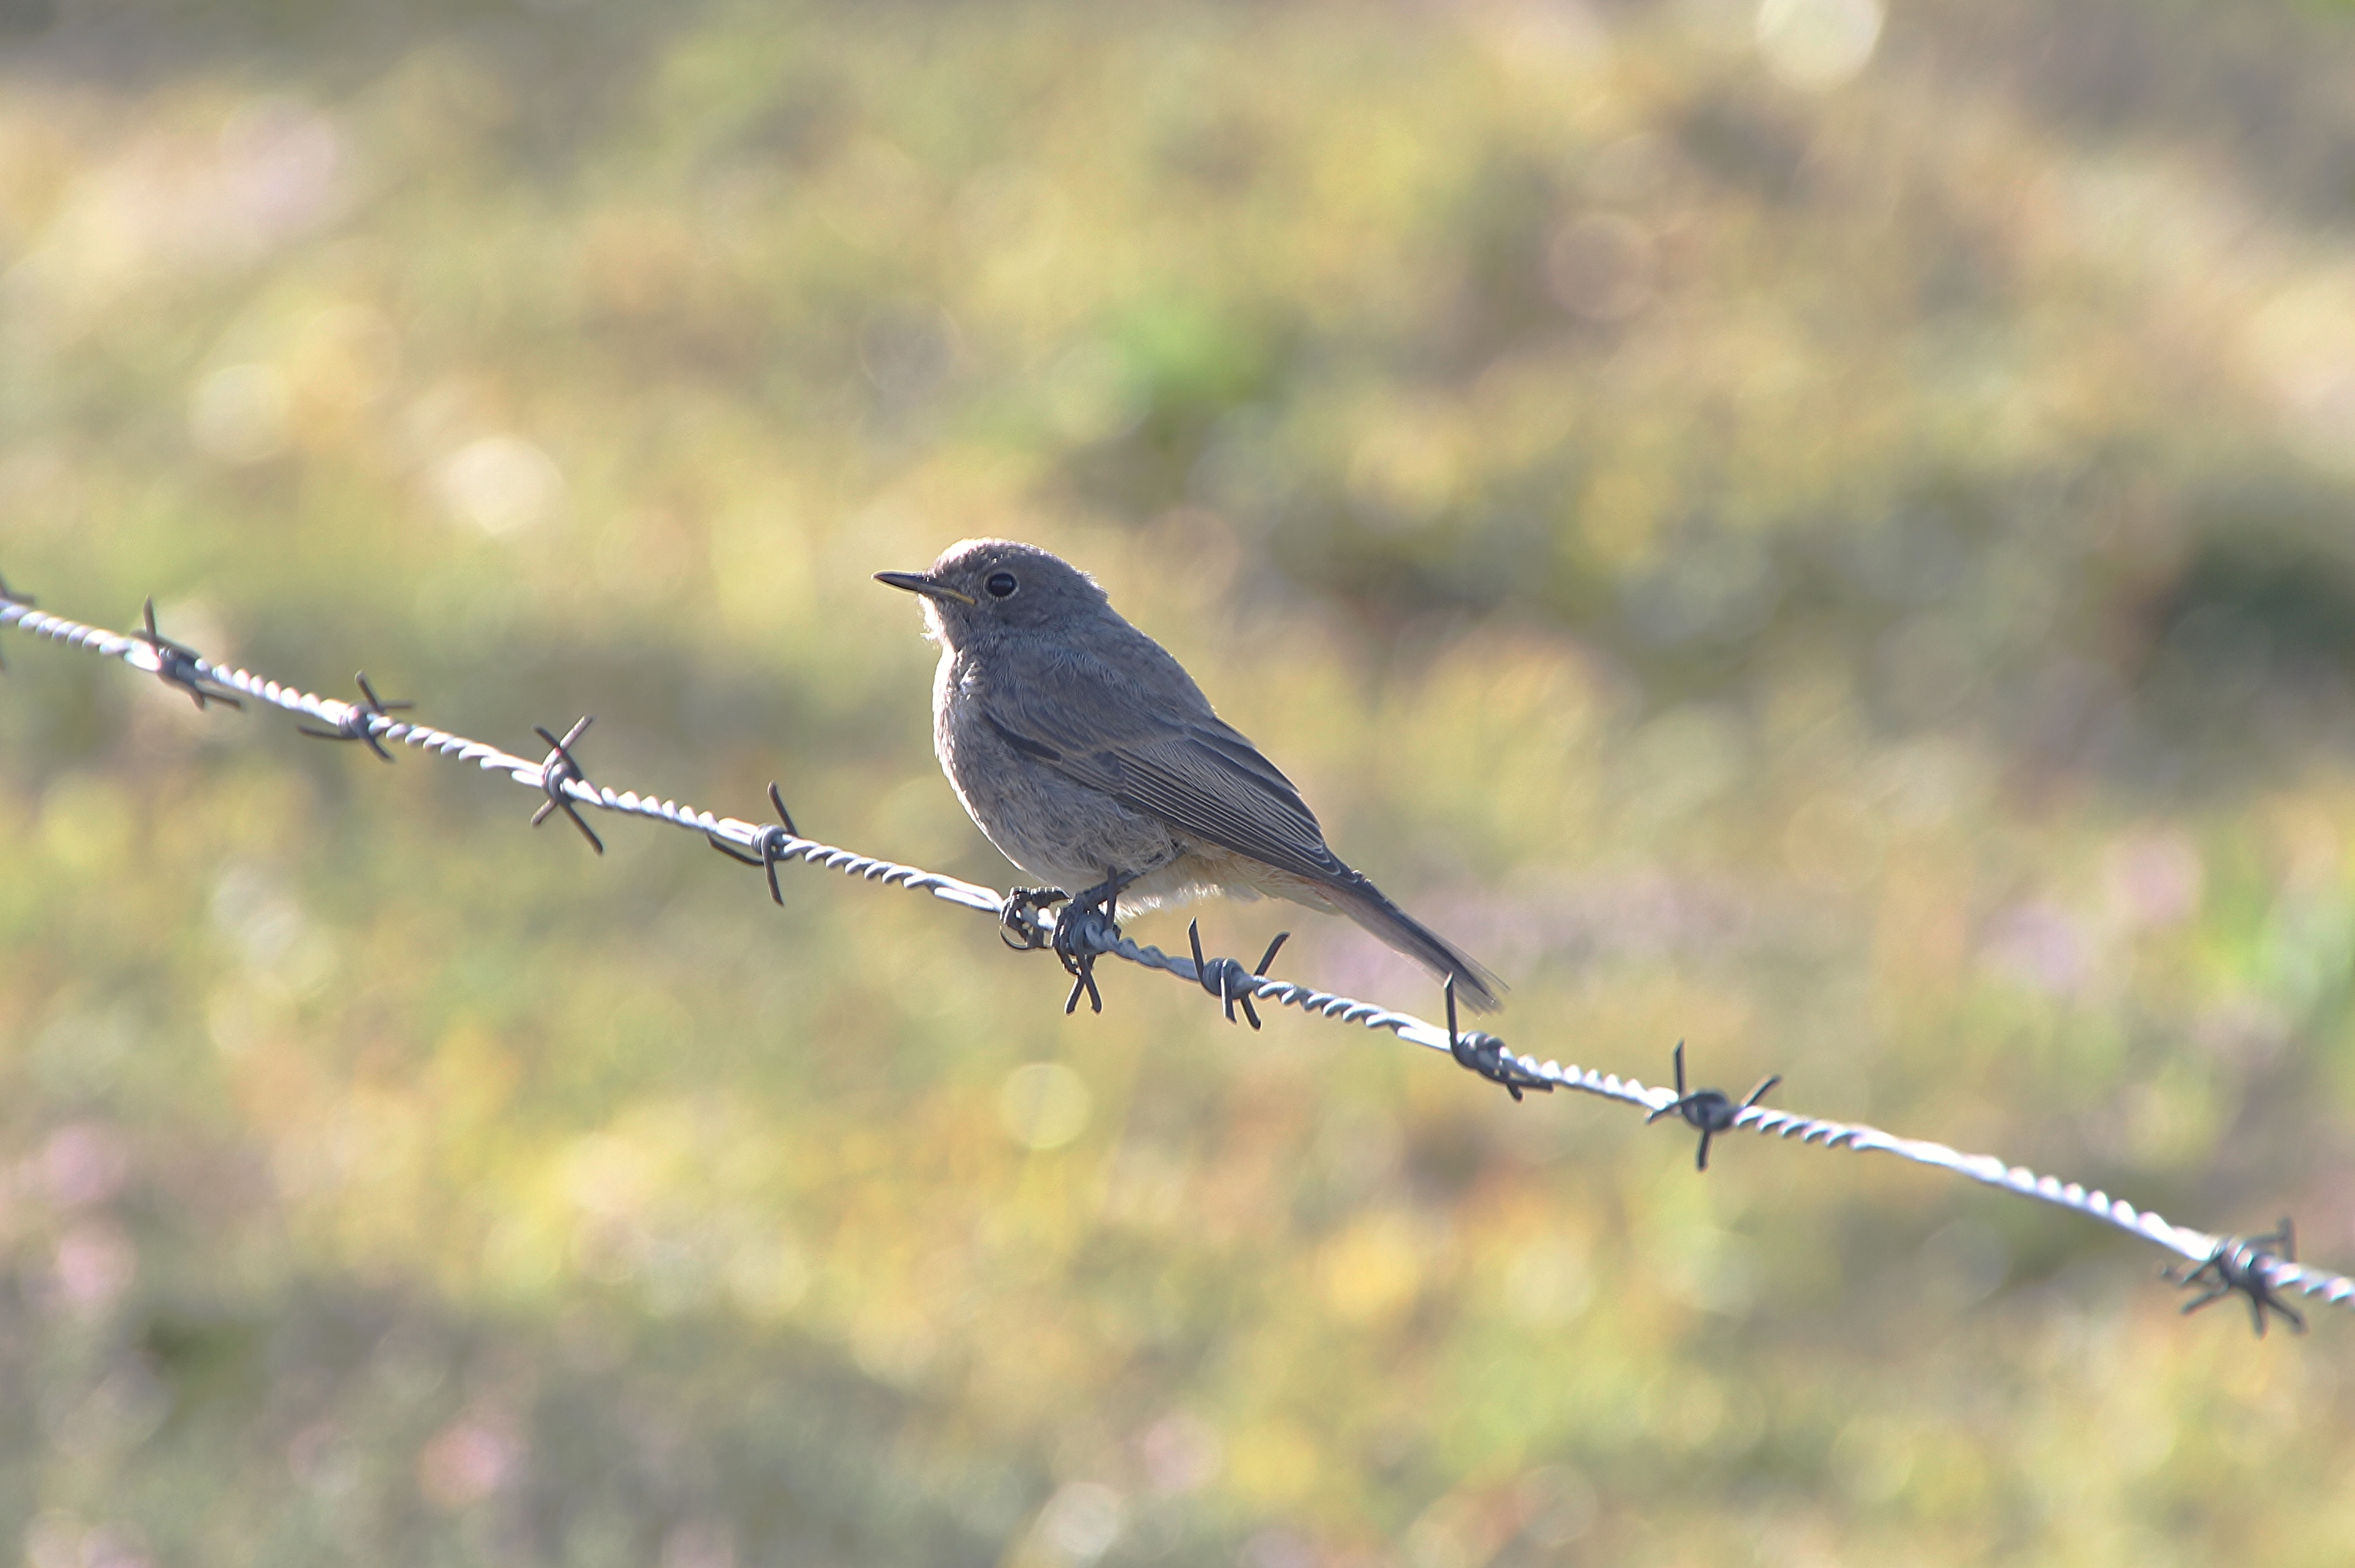 gray bird on barb wire fence